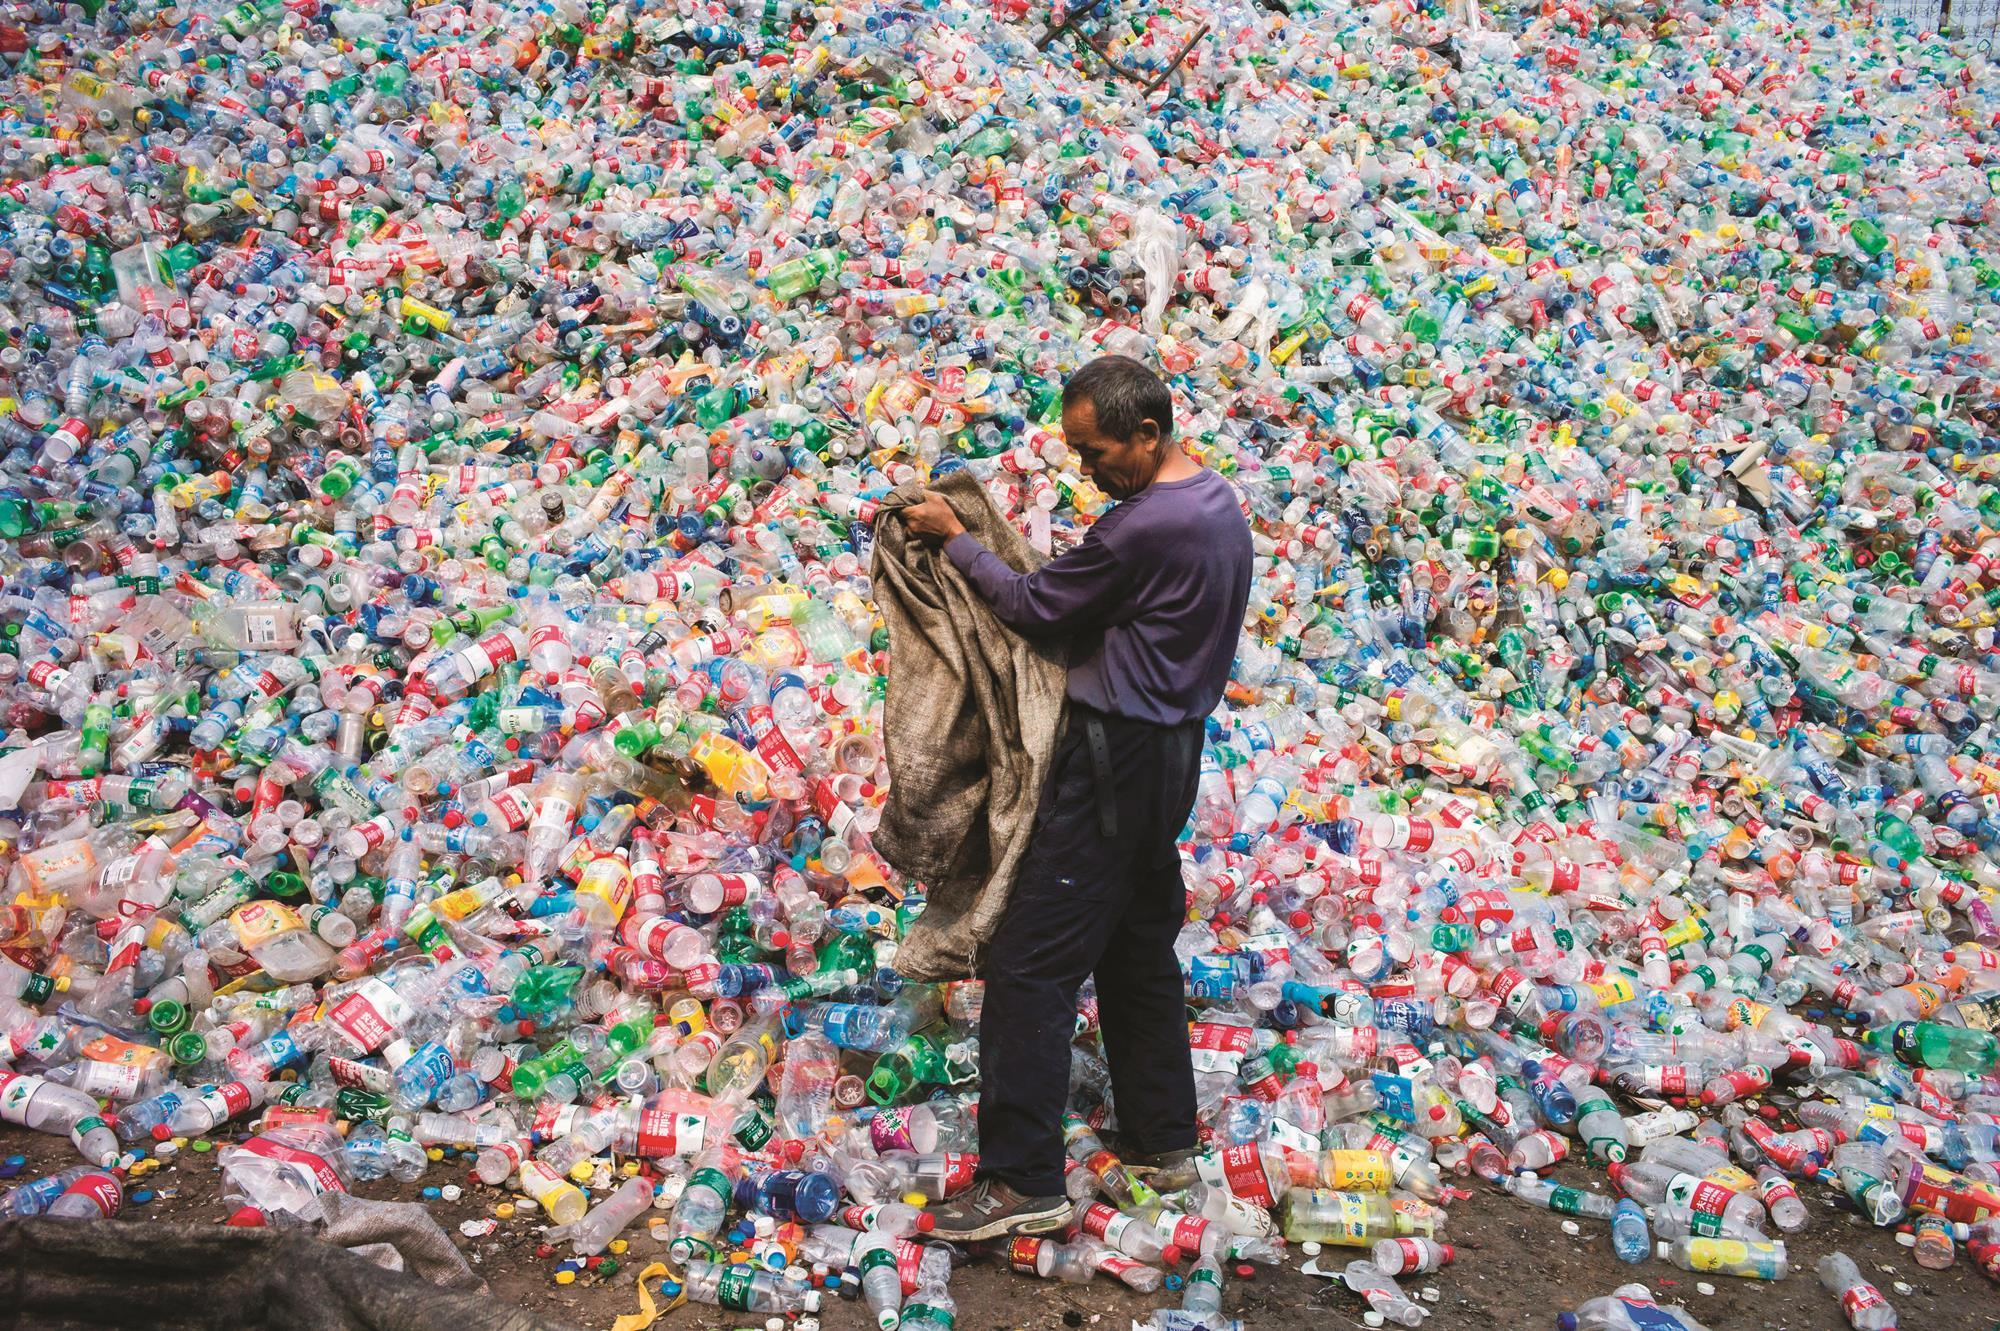 Recycling is taking back plastic | Feature | Chemistry World